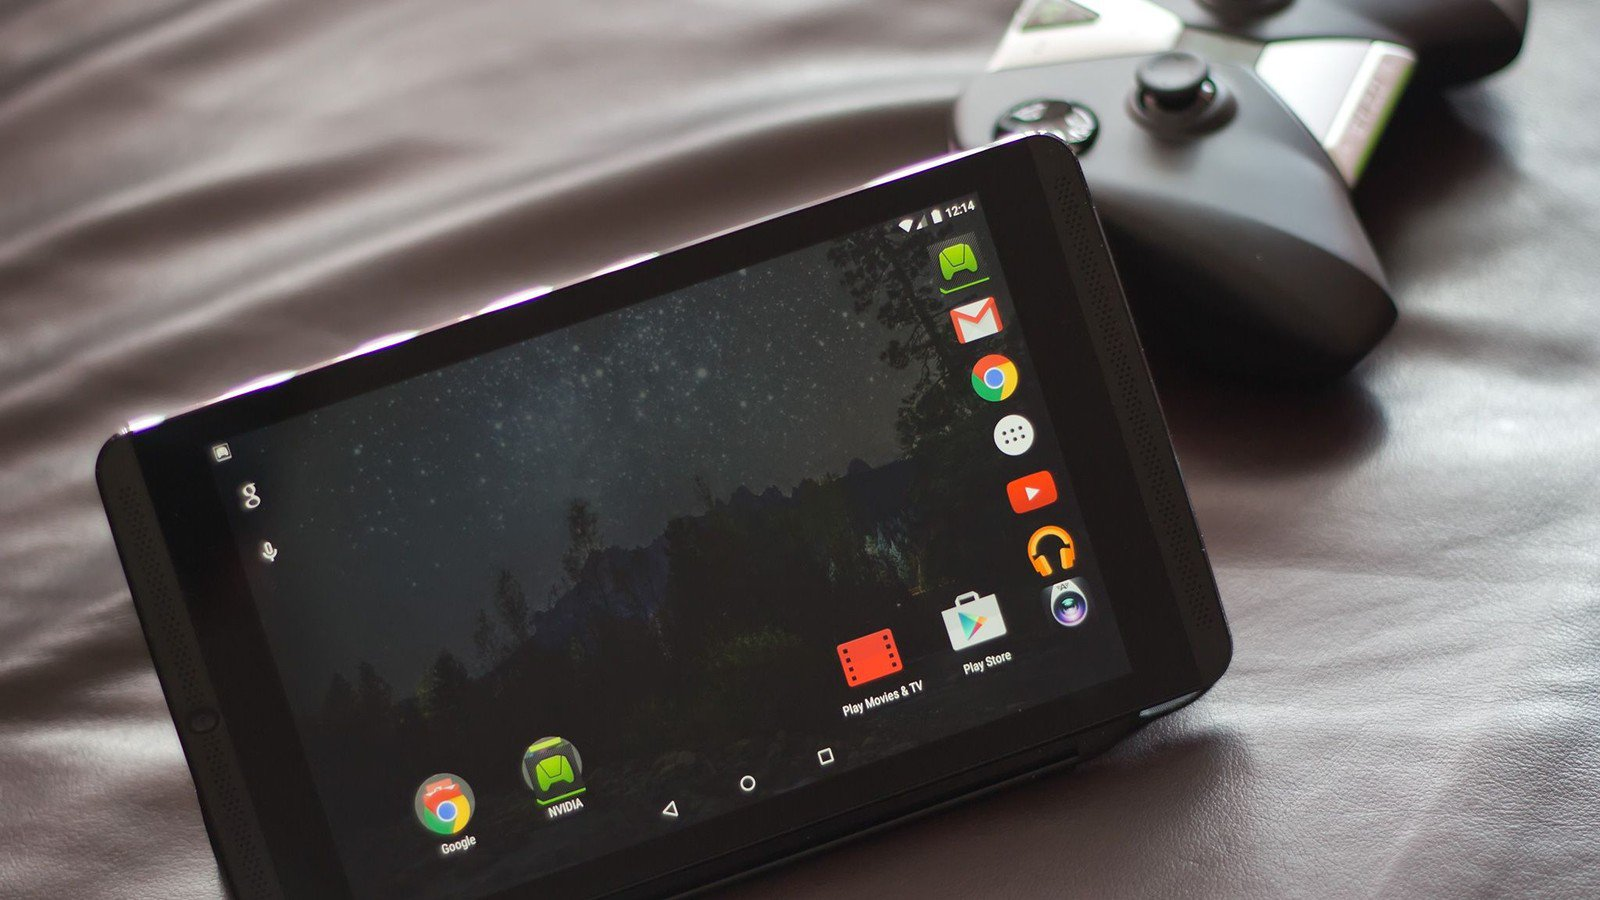 NVIDIA Shield Tablet Gets Android 5.0.1 Update